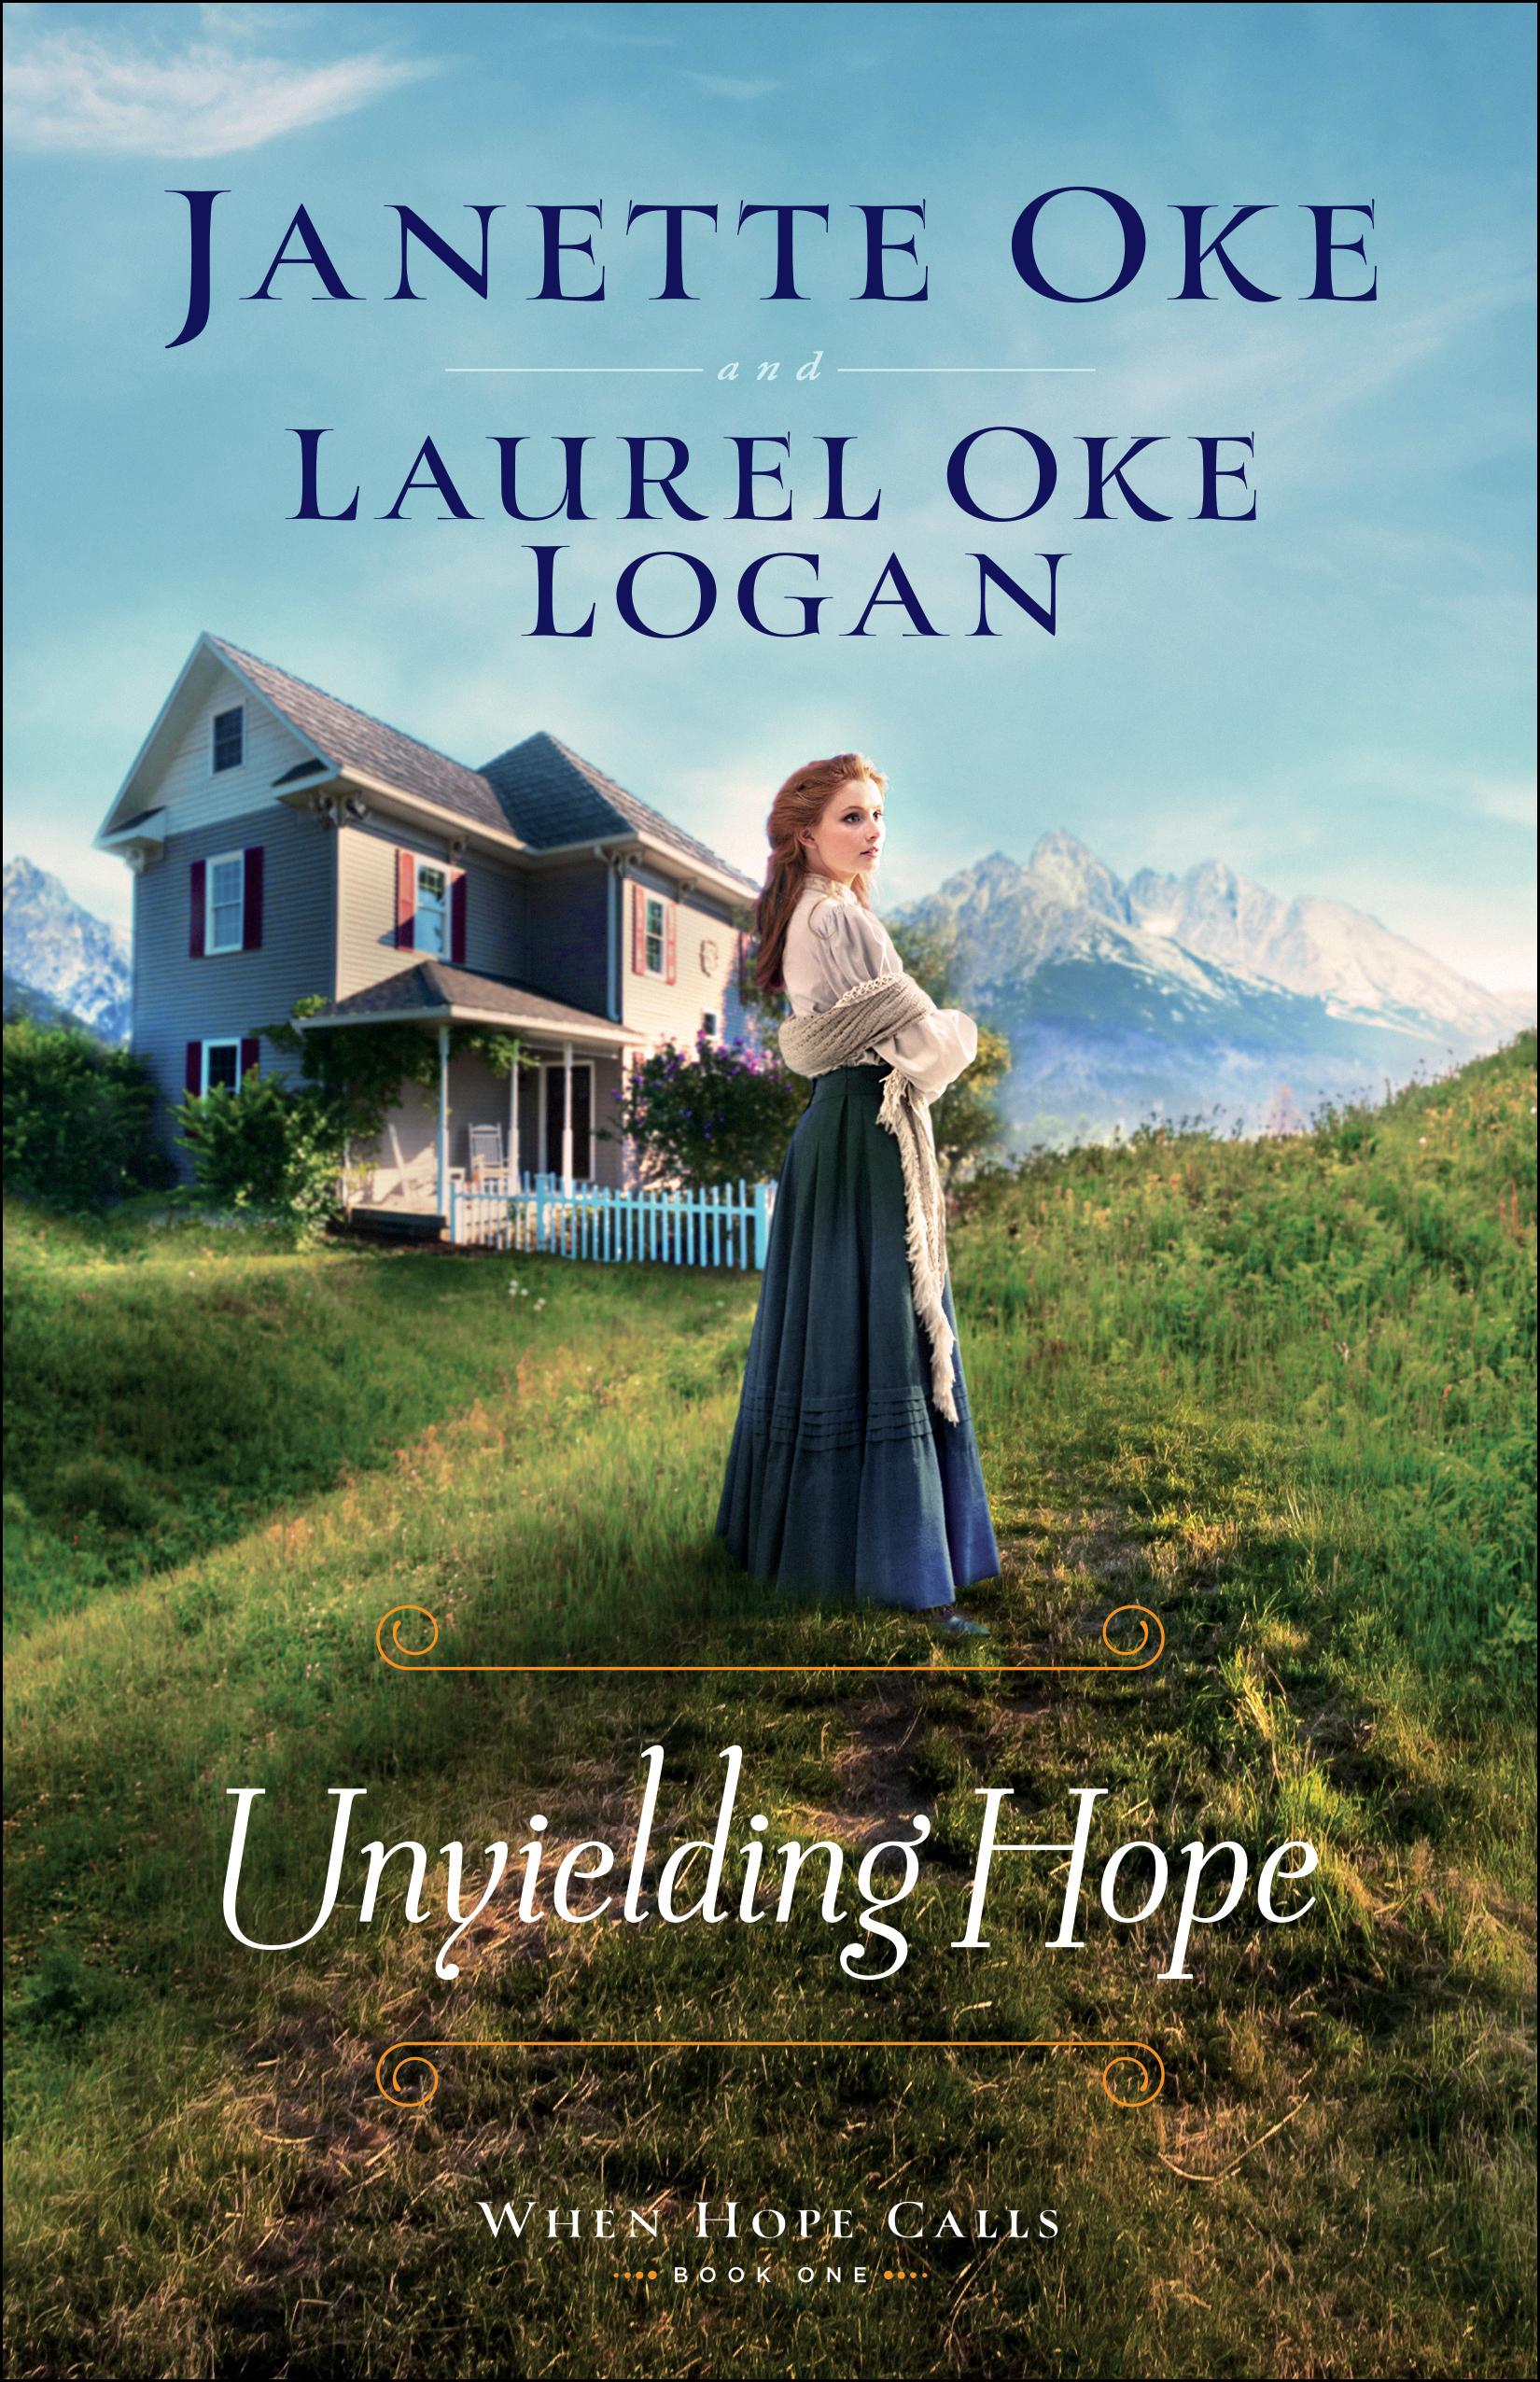 Unyielding Hope (When Hope Calls Book #1)